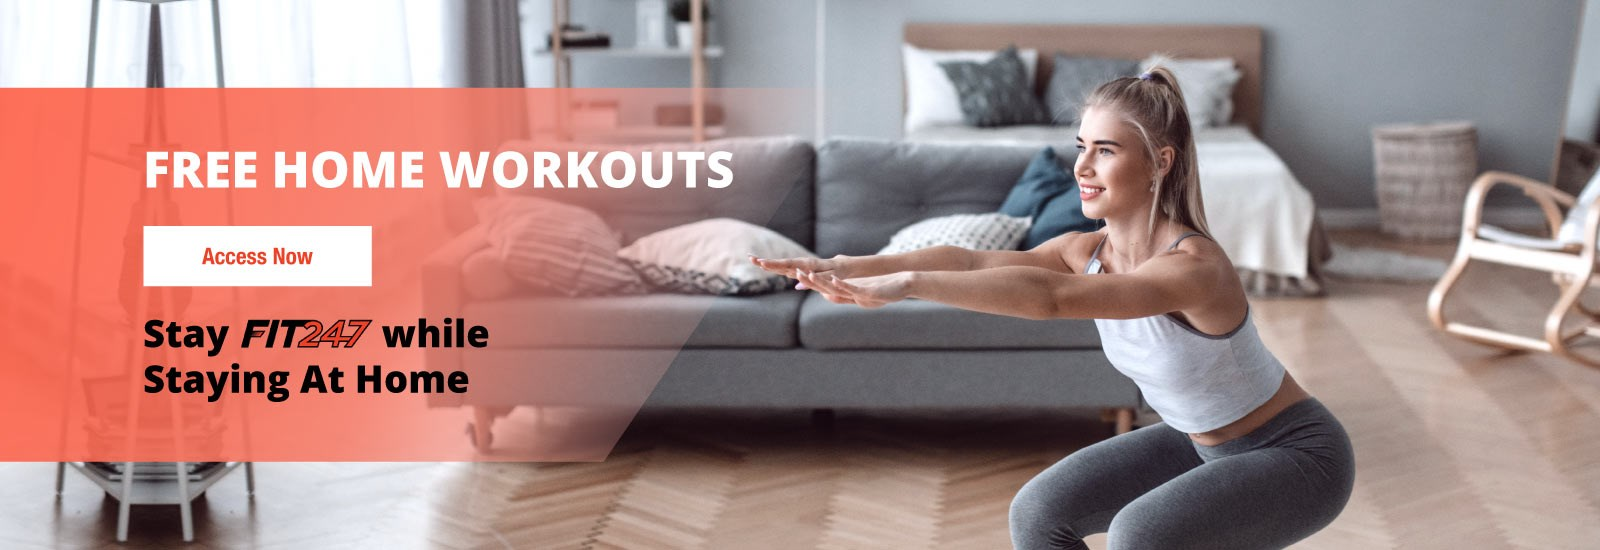 fee-workout-at-home-banner.jpg